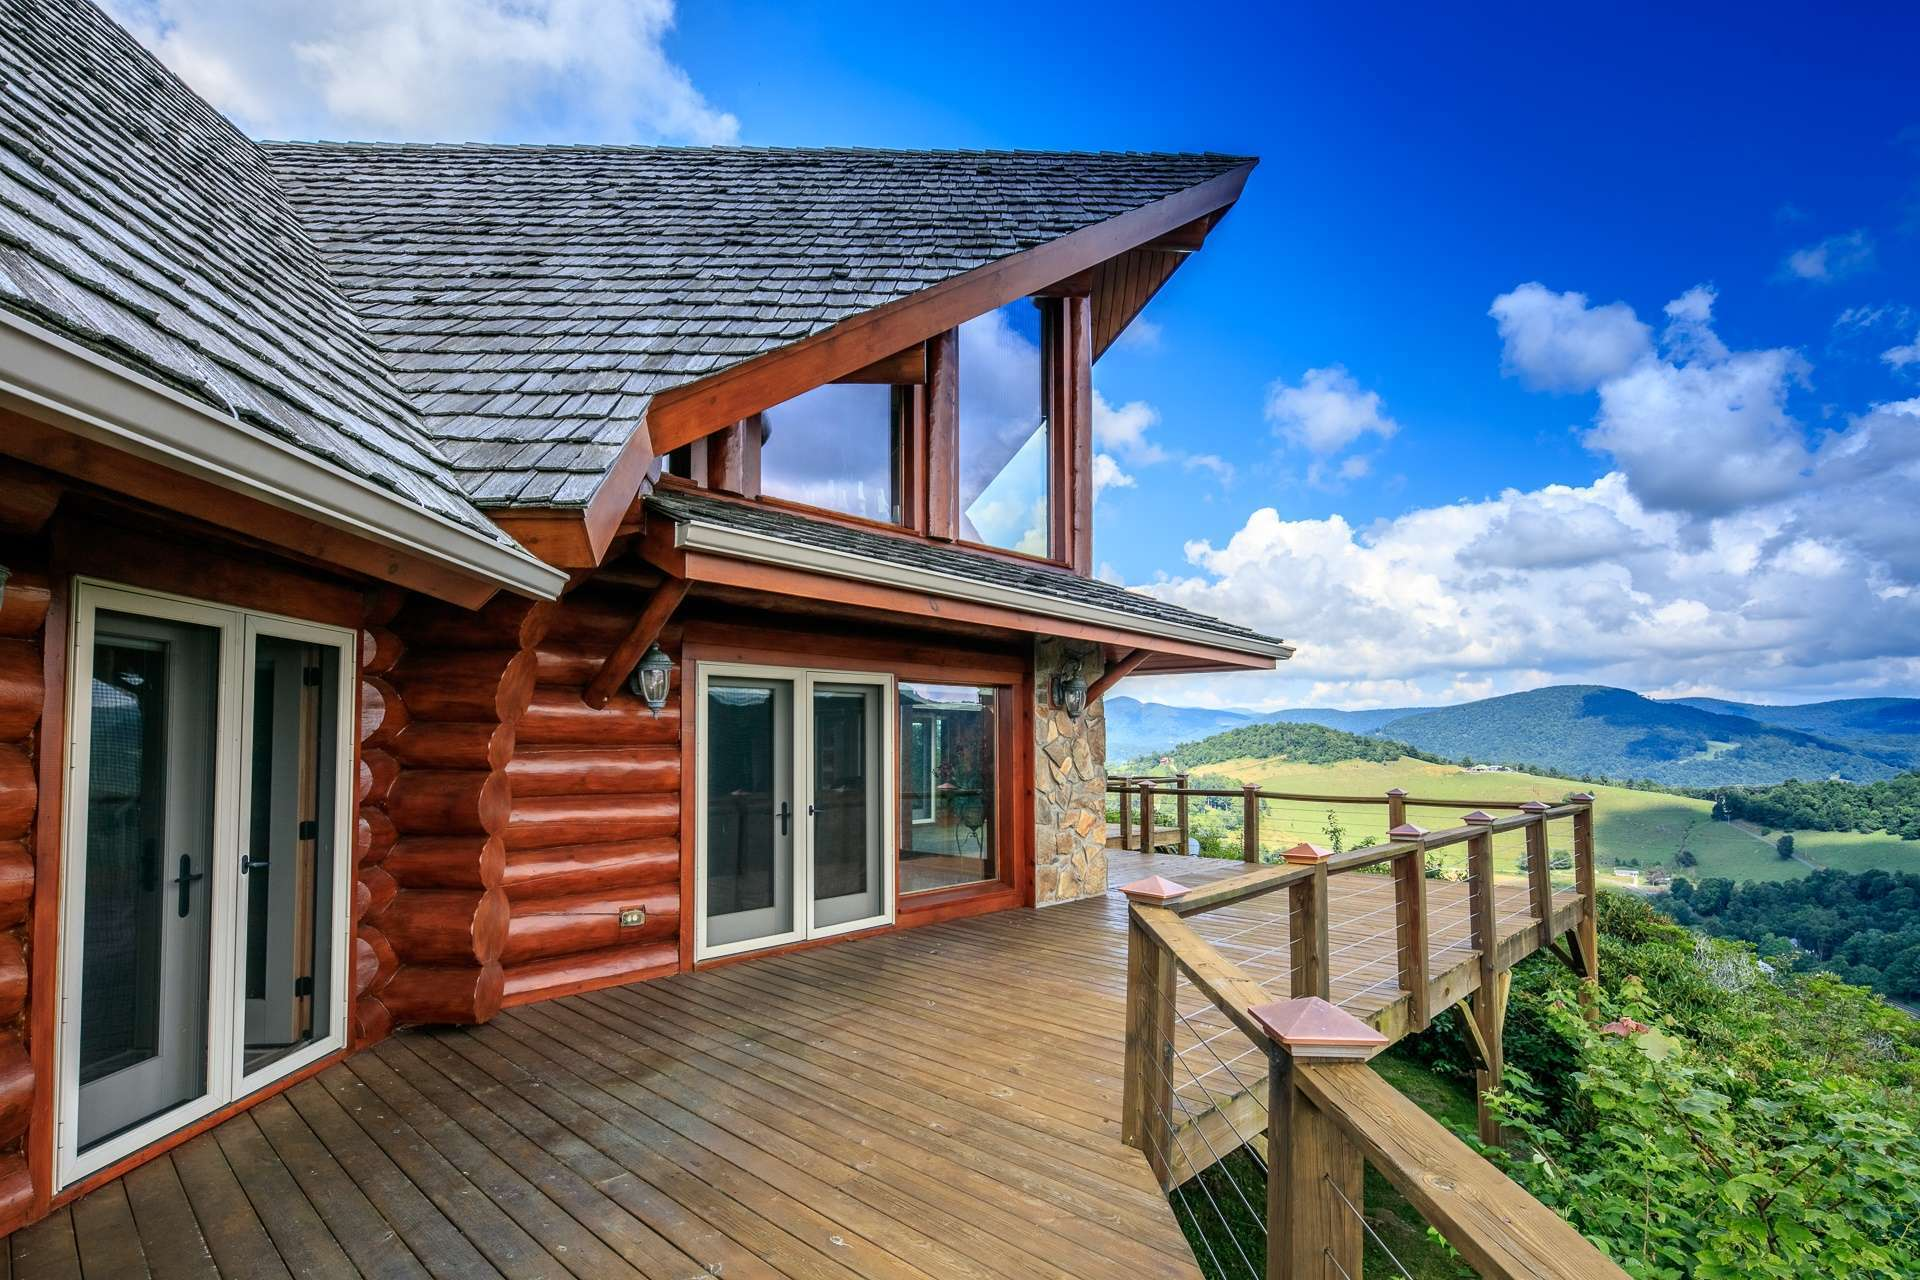 Expansive decking provides plenty of space for outdoor entertaining. Or, simply relax with your favorite beverage while enjoying the views and gentle mountain breezes.